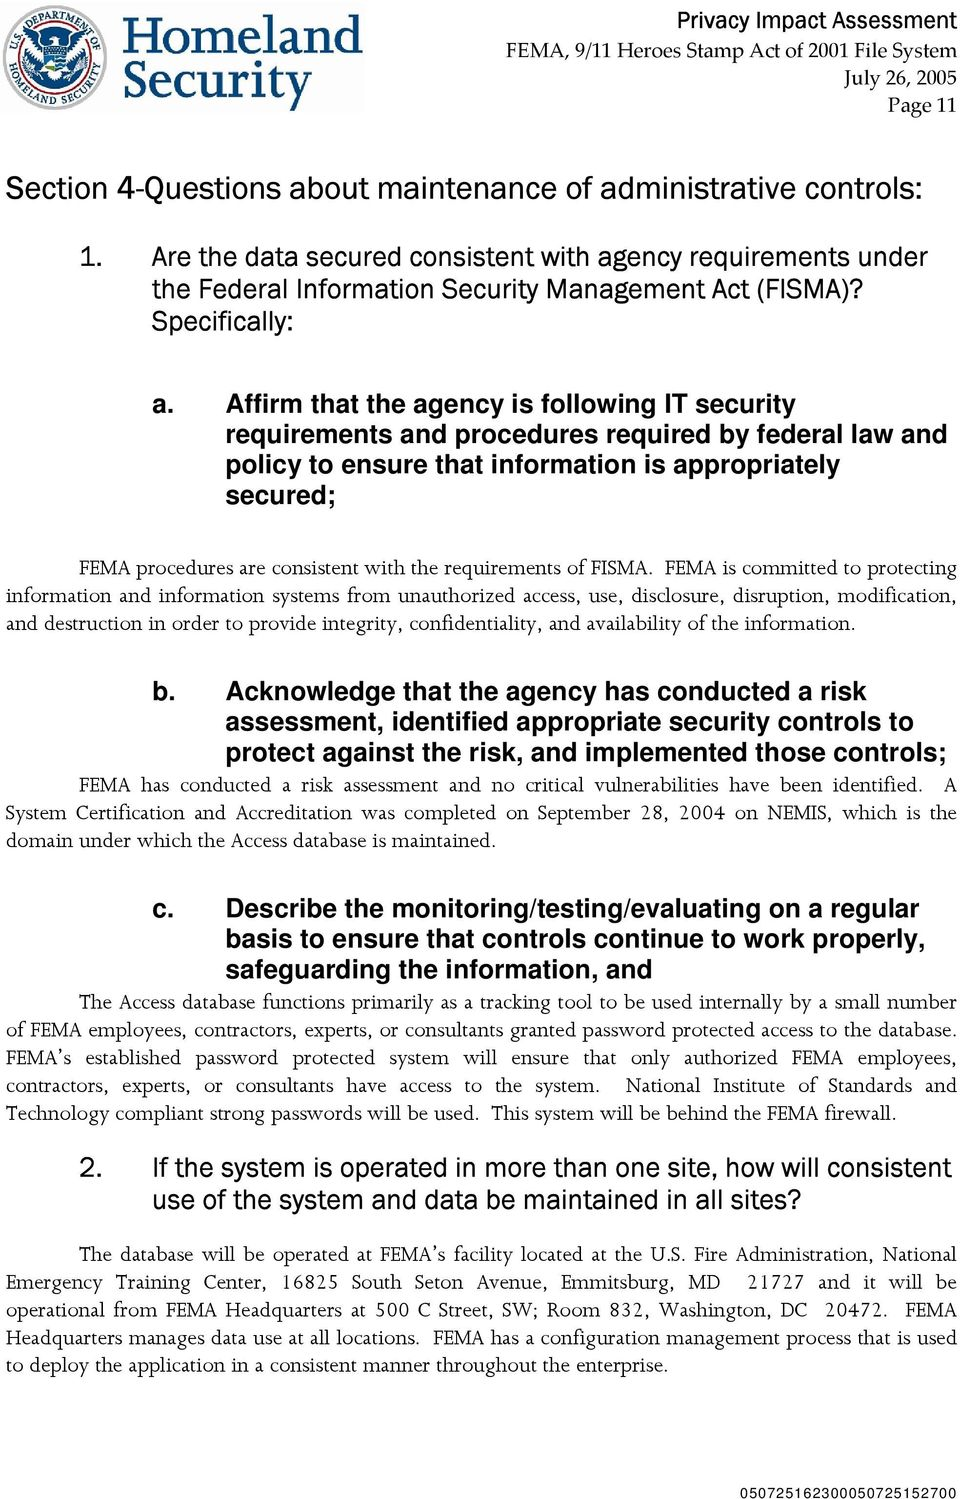 Affirm that the agency is following IT security requirements and procedures required by federal law and policy to ensure that information is appropriately secured; FEMA procedures are consistent with